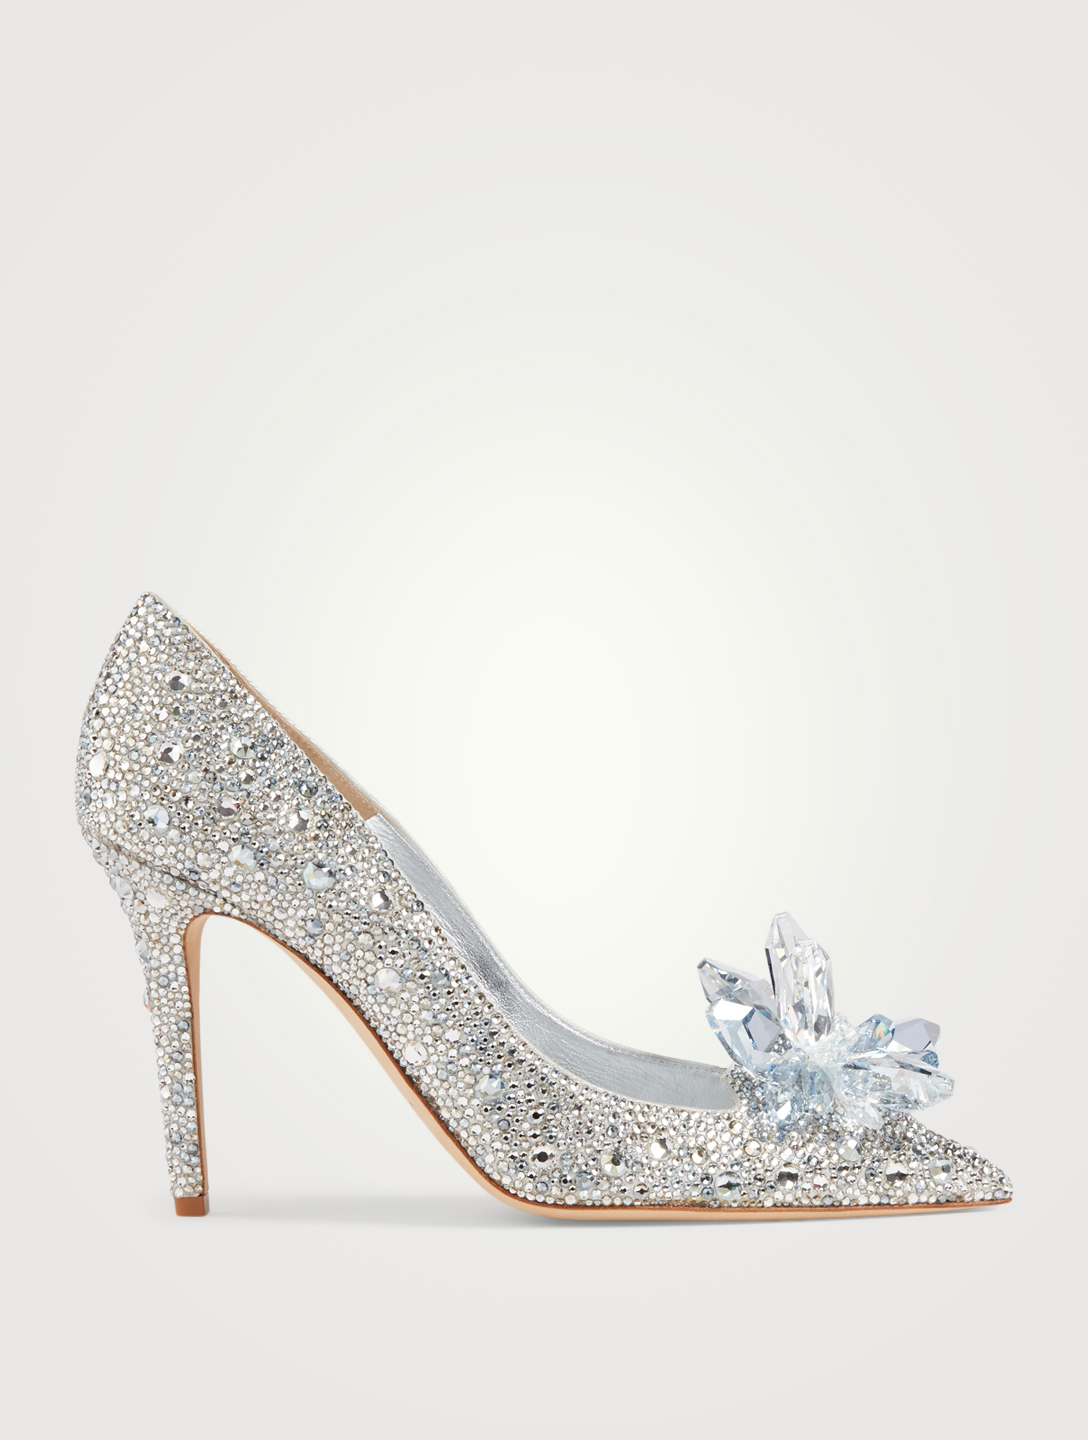 JIMMY CHOO Cinderella Edit Avril Crystal Pumps Womens Silver